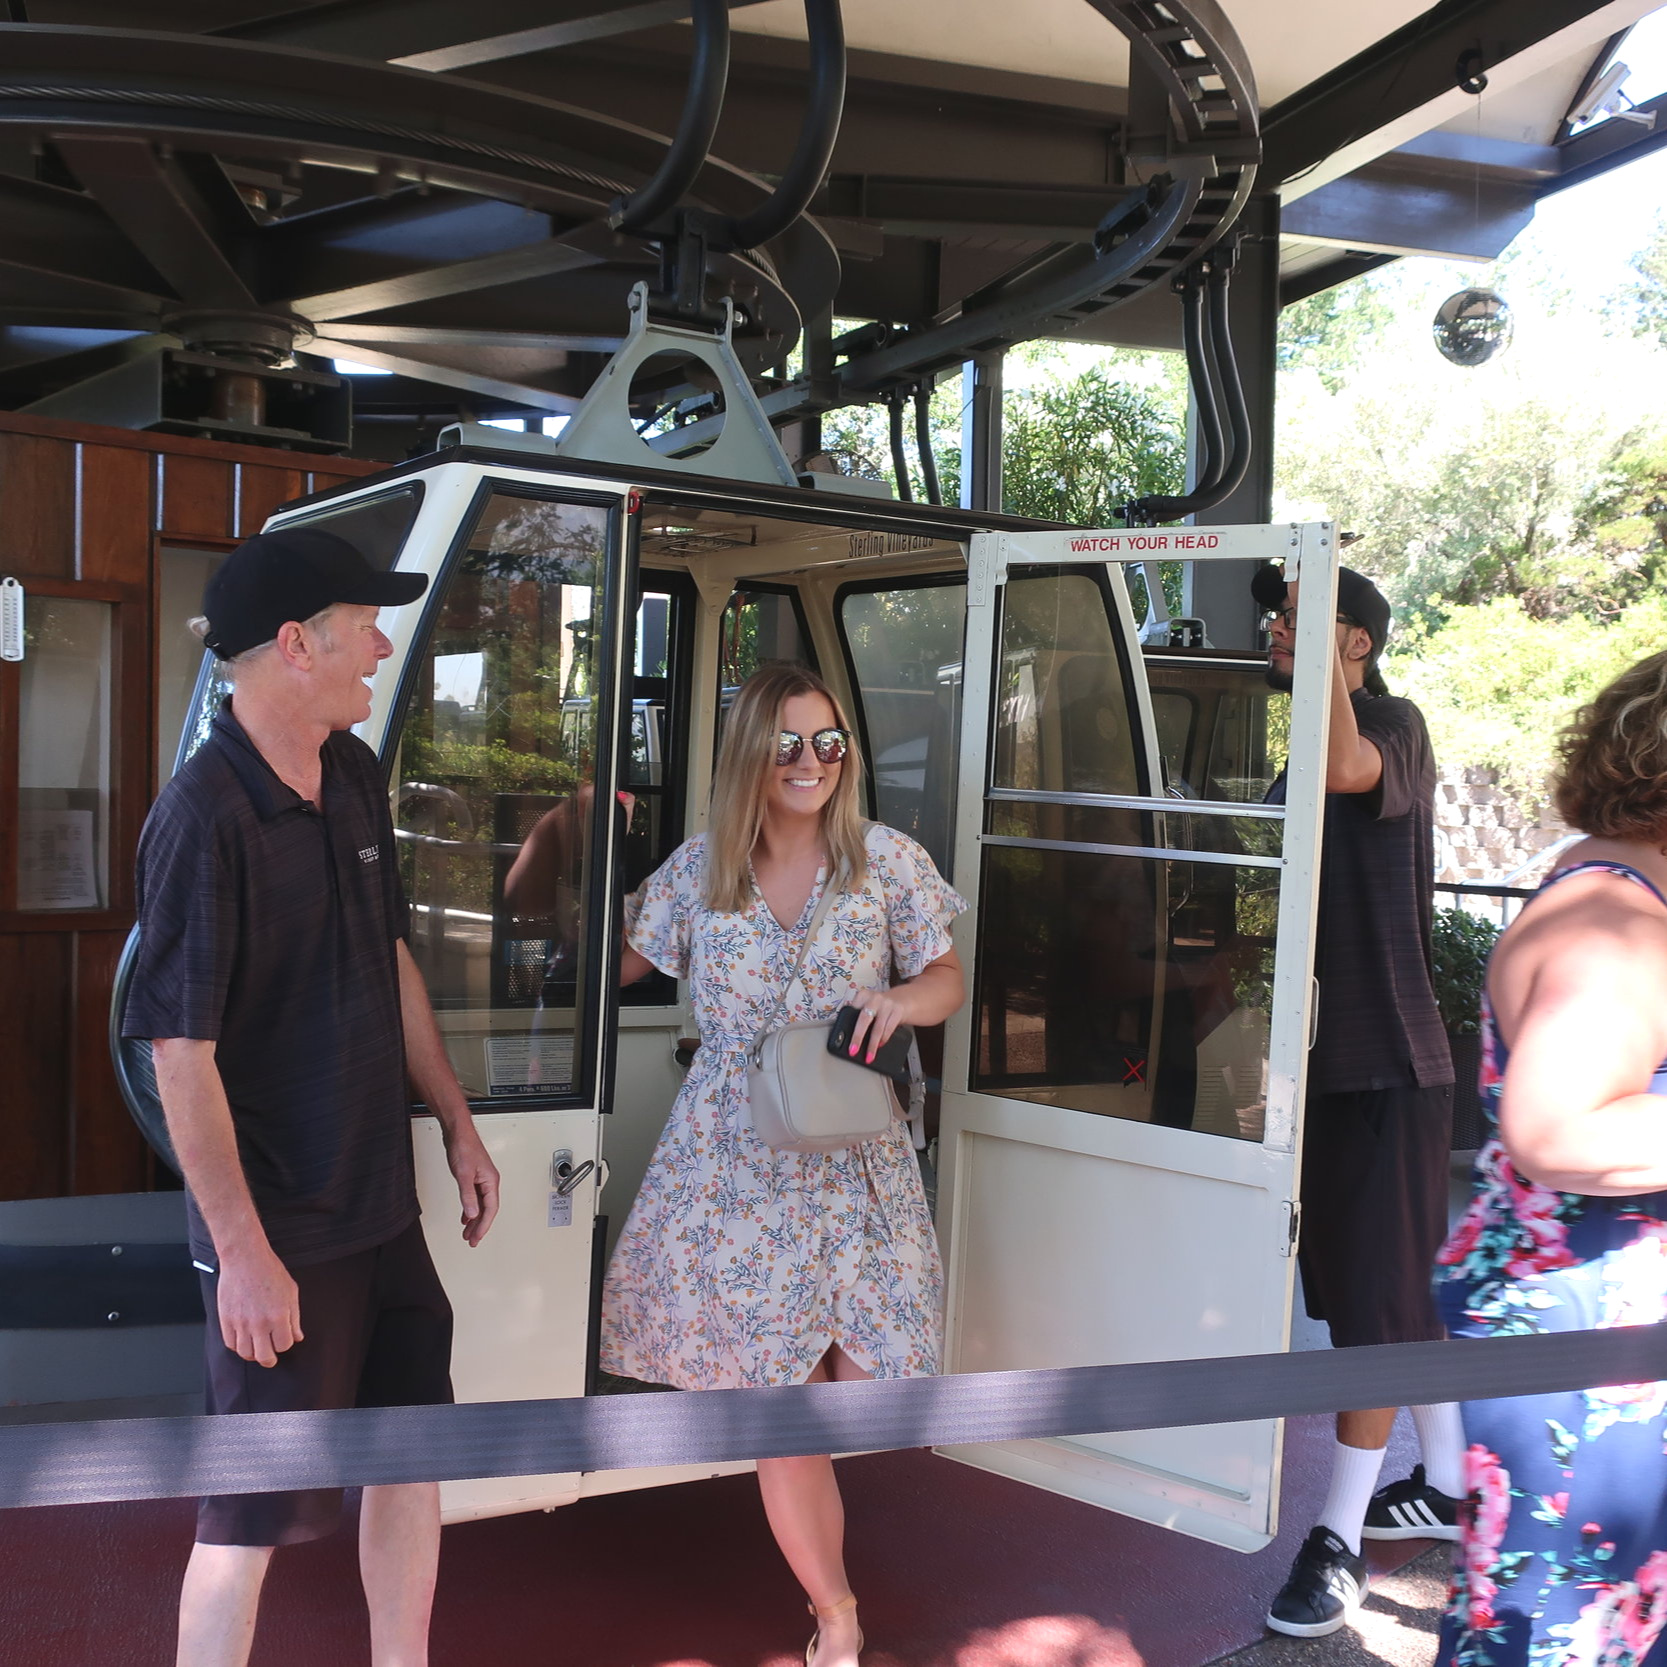 Ride the Tram at Sterling with a $10 off free deal from Napa Tourist Guide (napatouristguide.com)